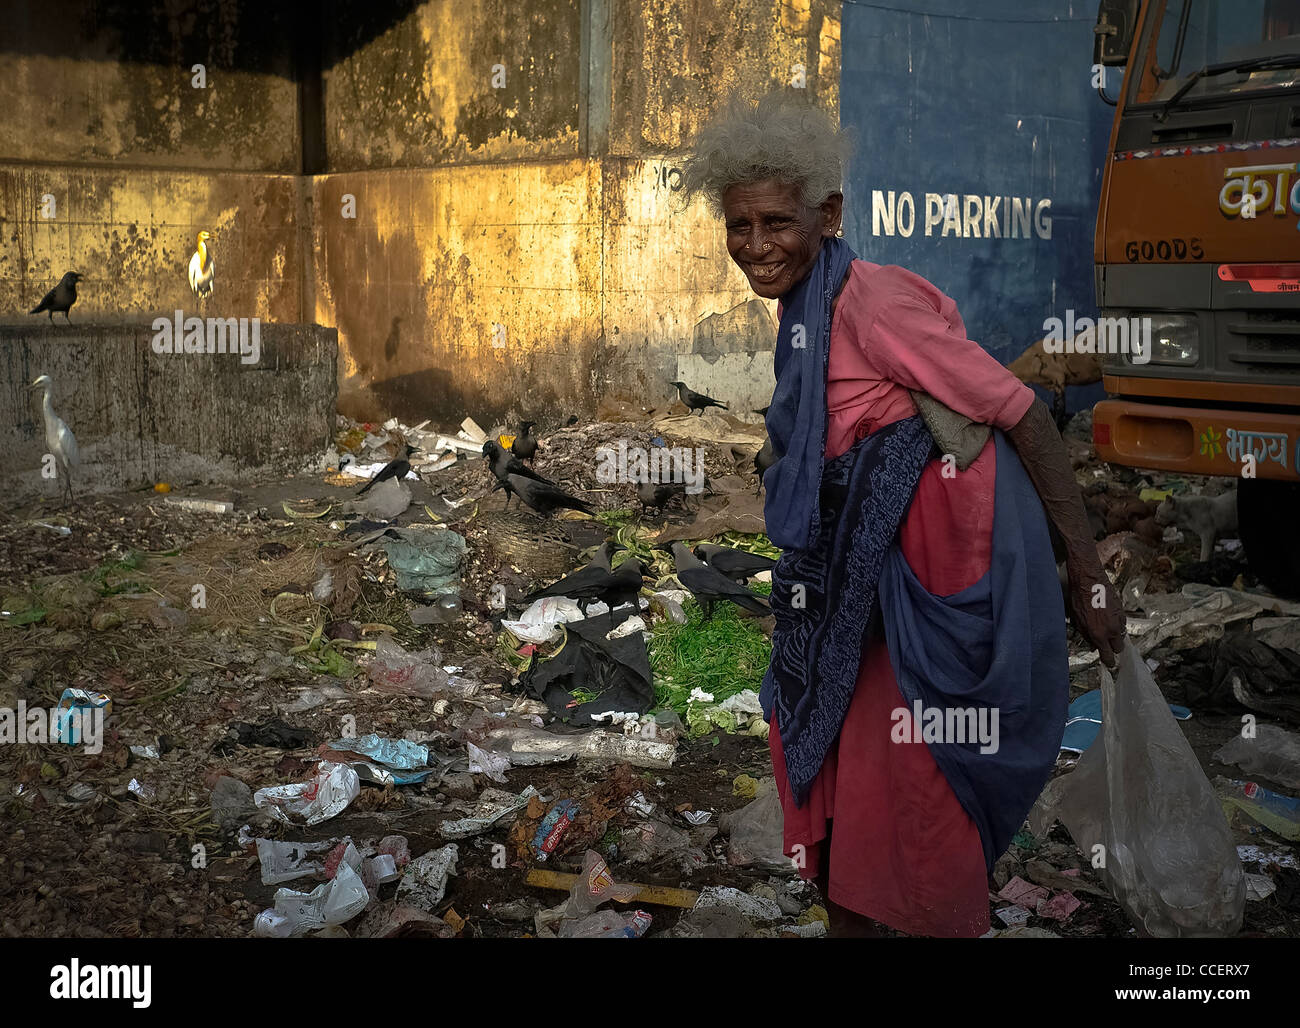 Untouchable and disabled Bombay., Food in the garbage. - Stock Image